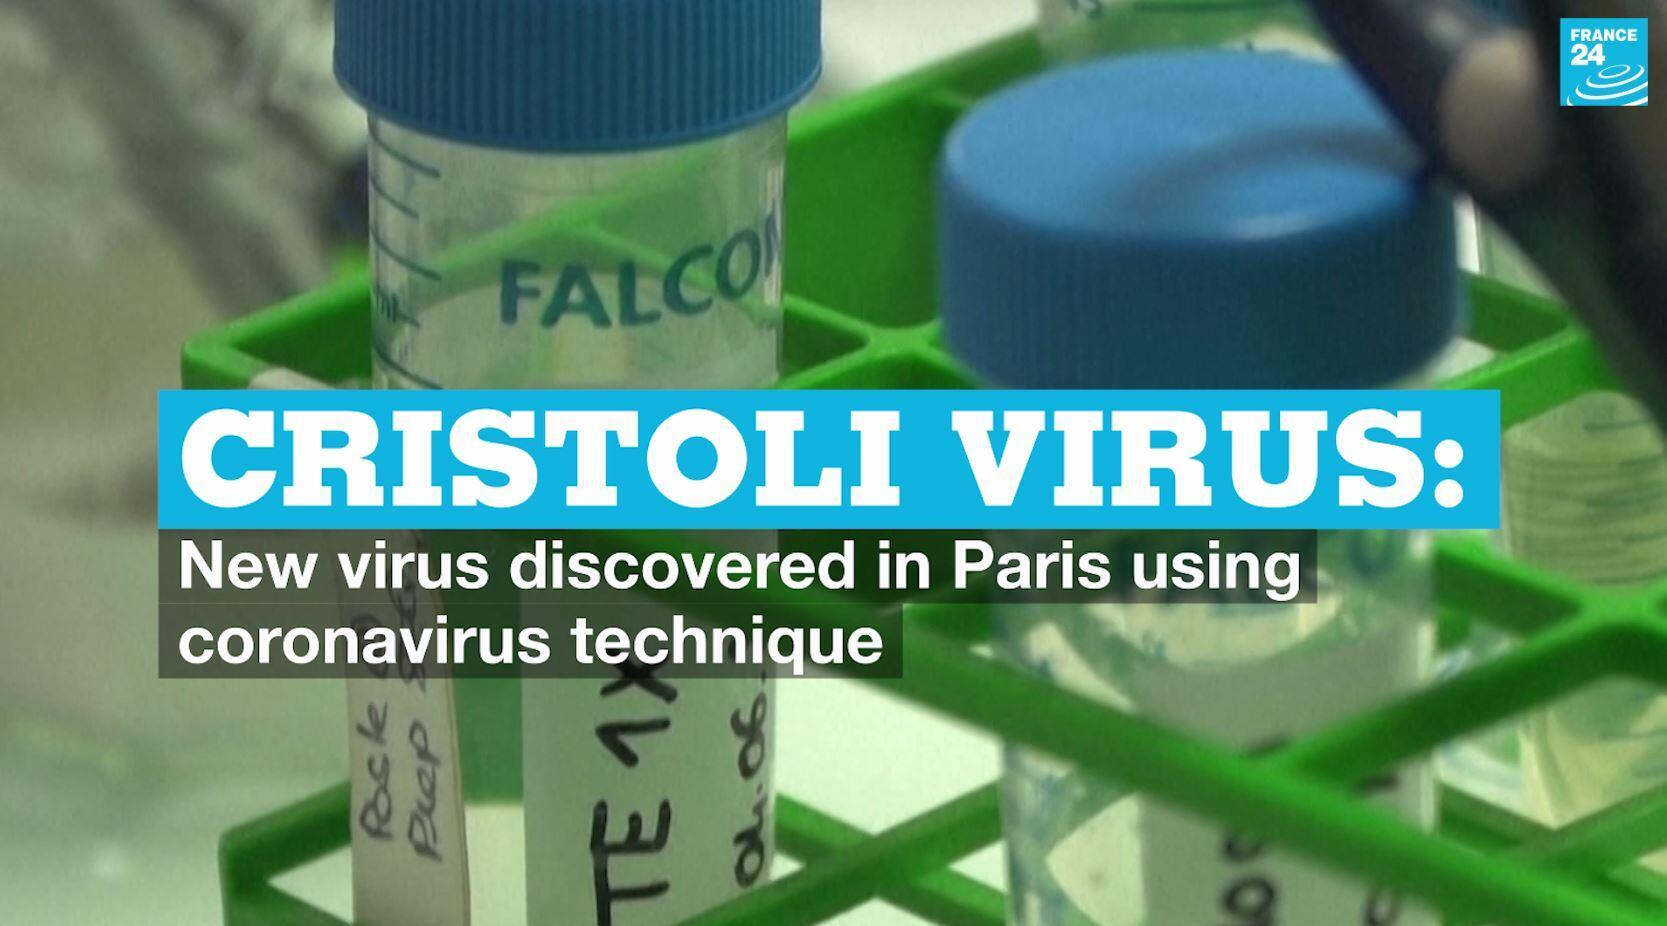 Researchers in France say they have discovered a new virus using the same method used to identify the coronavirus that caused the Covid-19 pandemic.